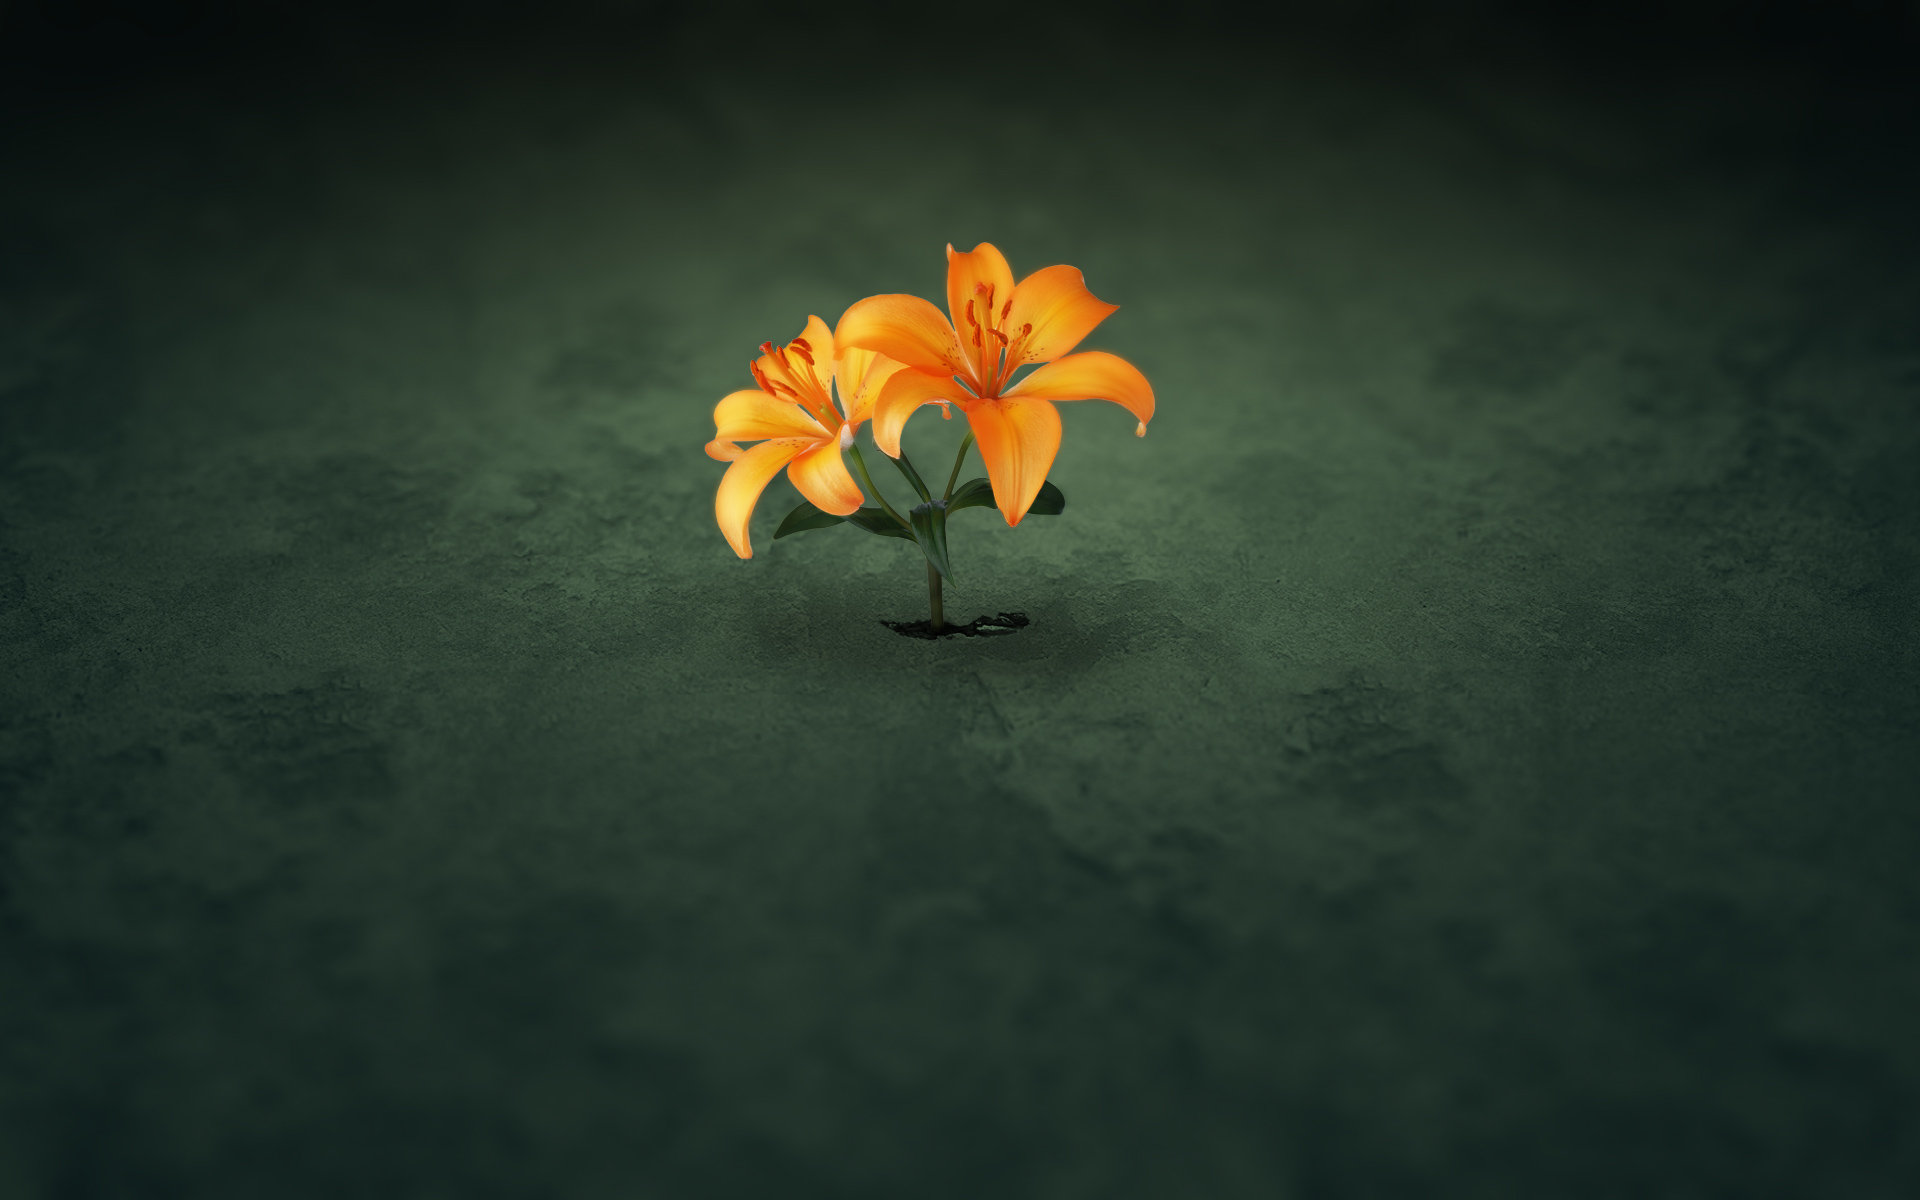 Bright flower on a dark ground, one of my favorite wallpapers